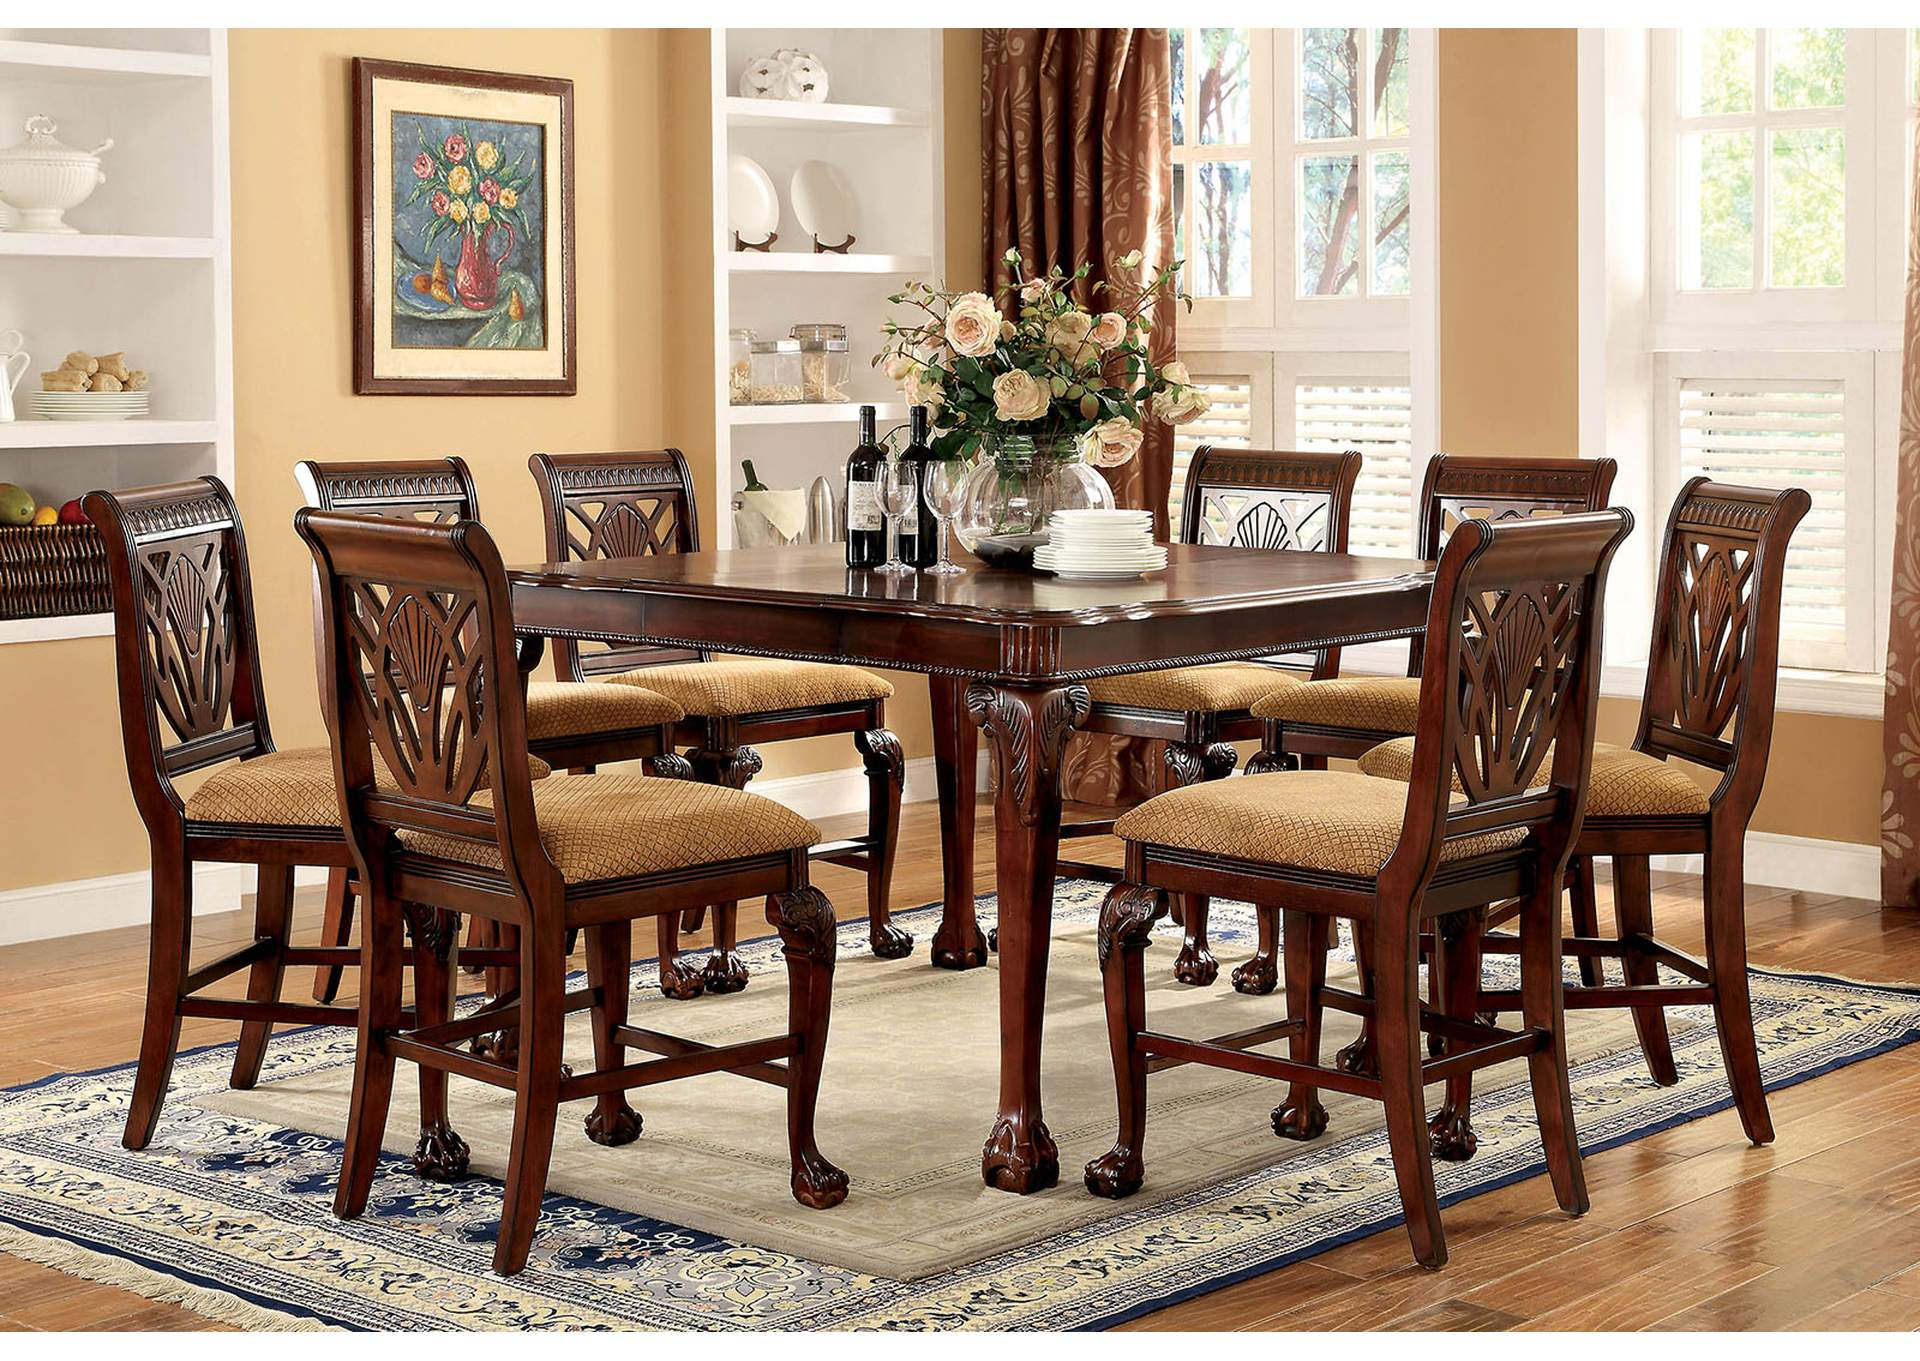 Petersburg l Cherry Square Counter Height Dining Table w/8 Counter Height Side Chairs,Furniture of America